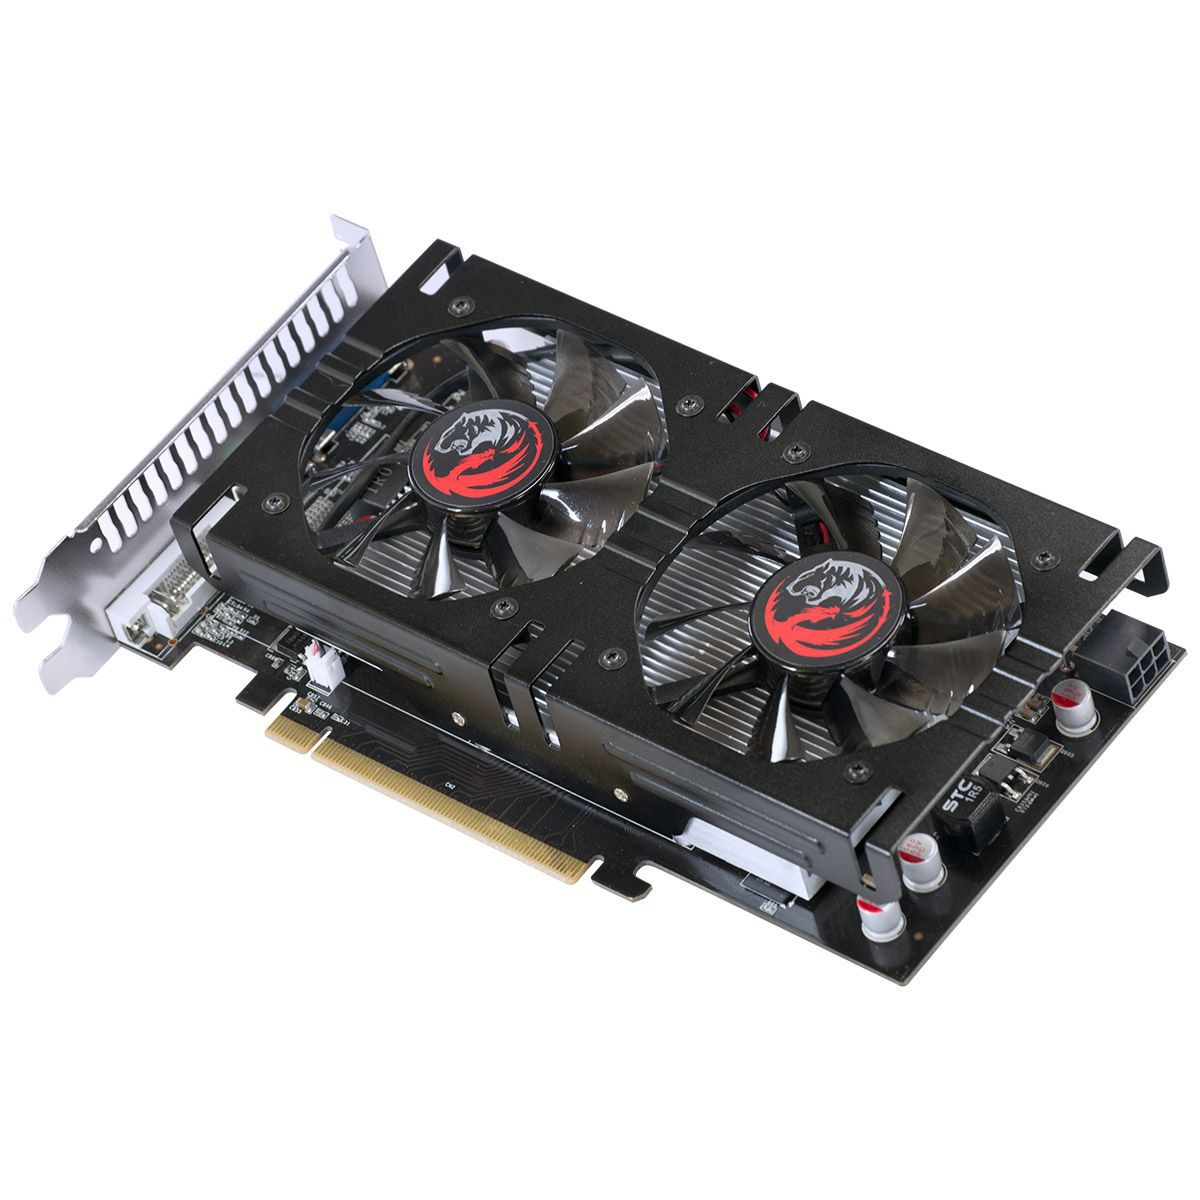 PLACA DE VIDEO 9800 1GB DDDR3 256 BITS DUAL-FAN - PJ980025601D3